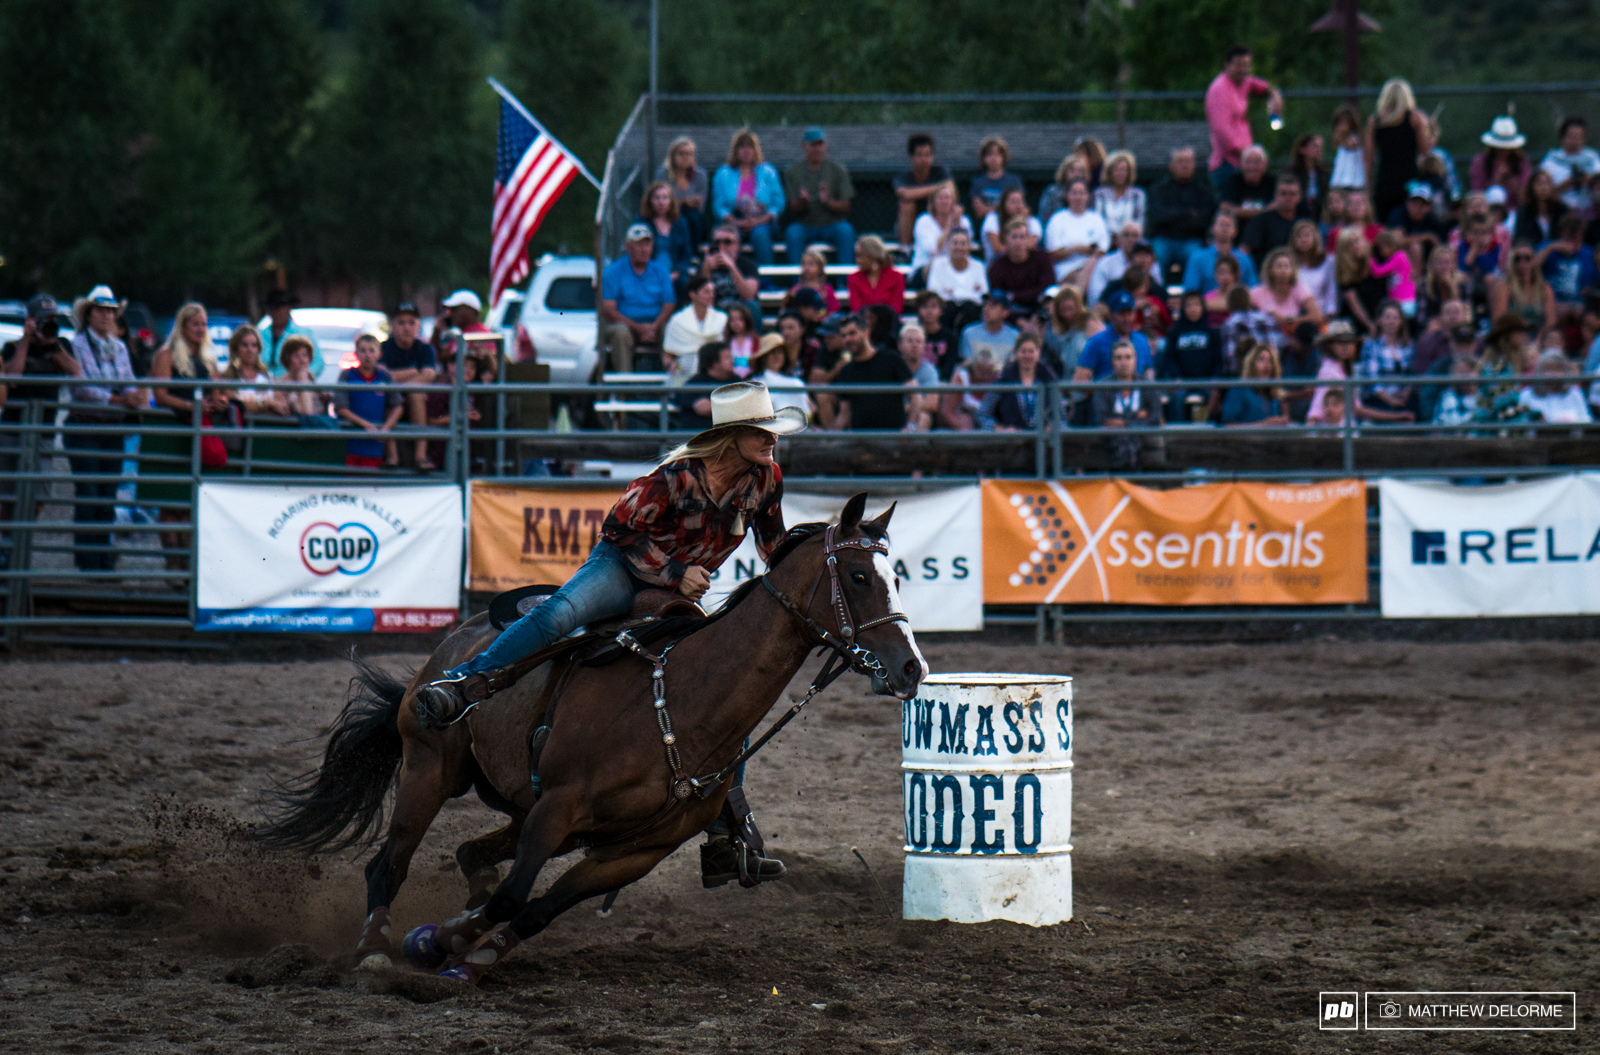 We watched the dirt fly during a bit of barrel racing at the Snowmass rodeo.